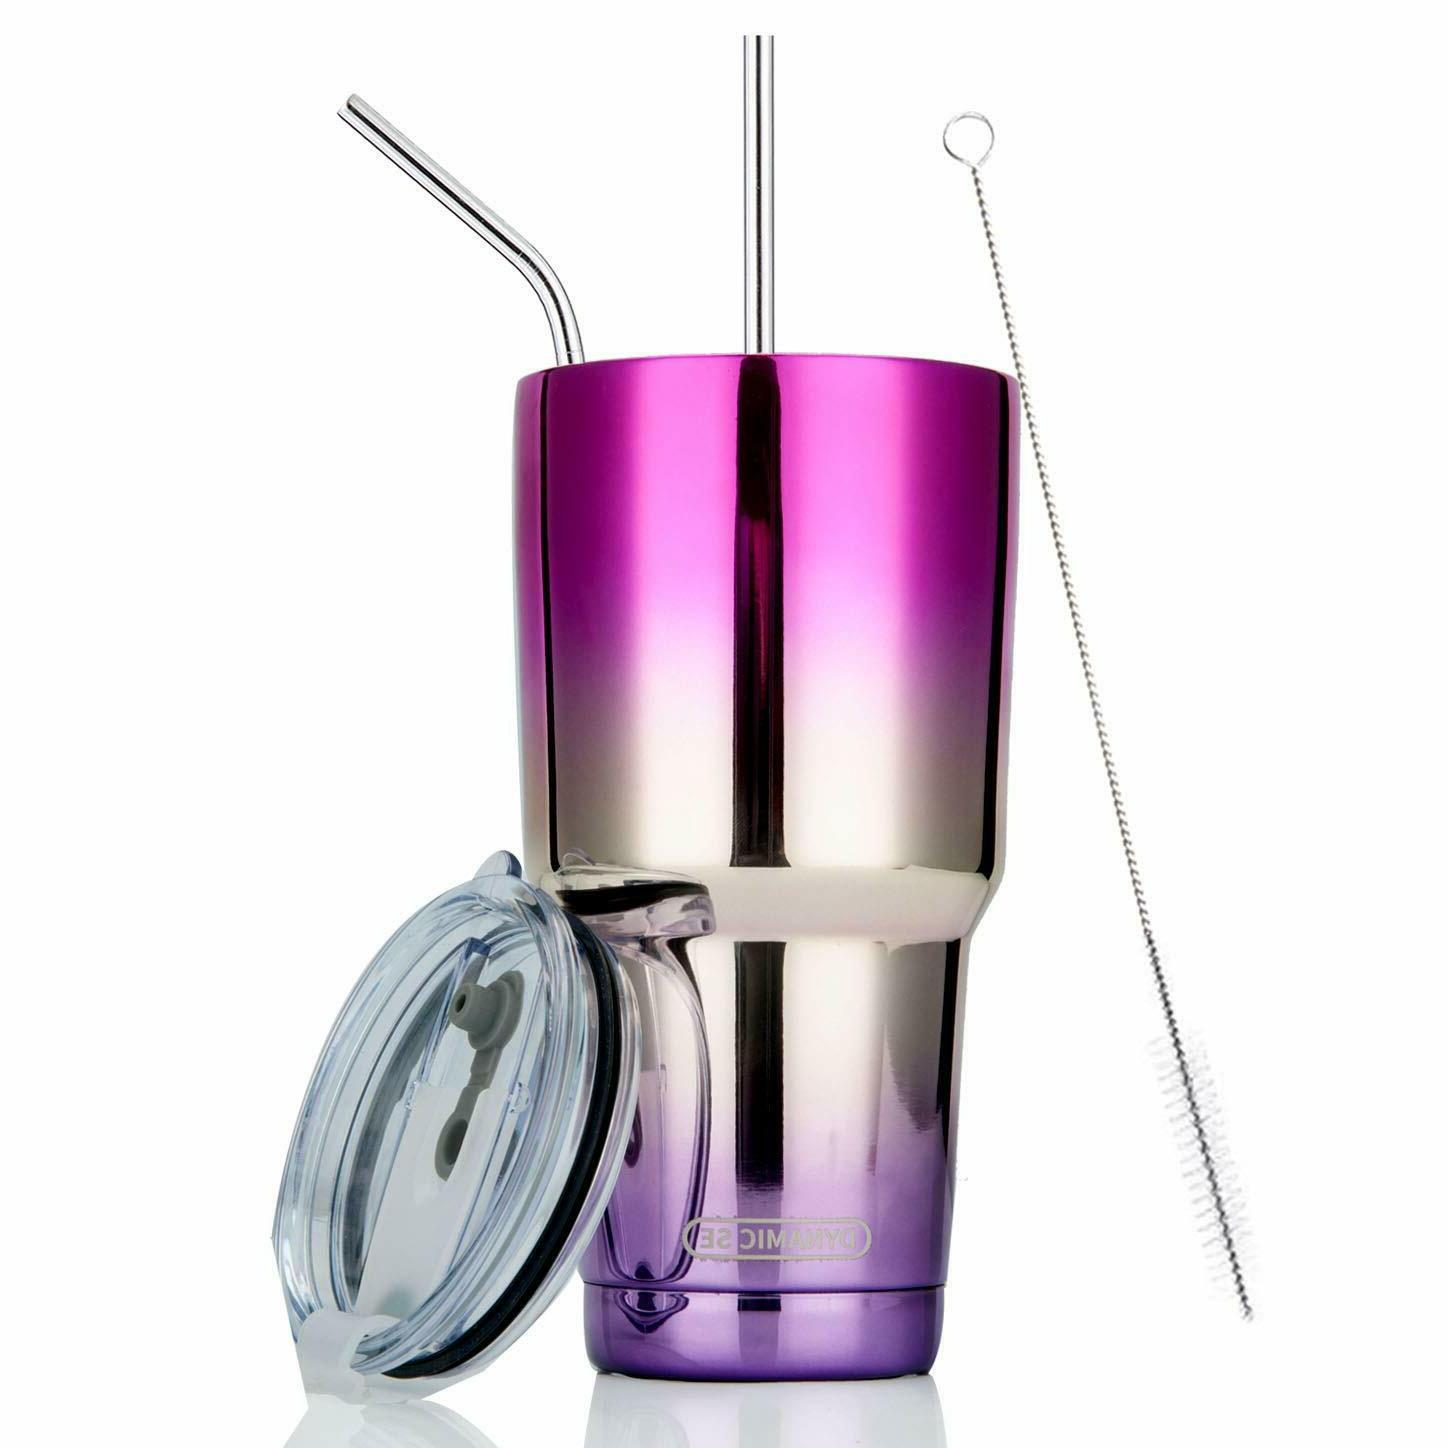 30 oz tumbler double wall stainless steel